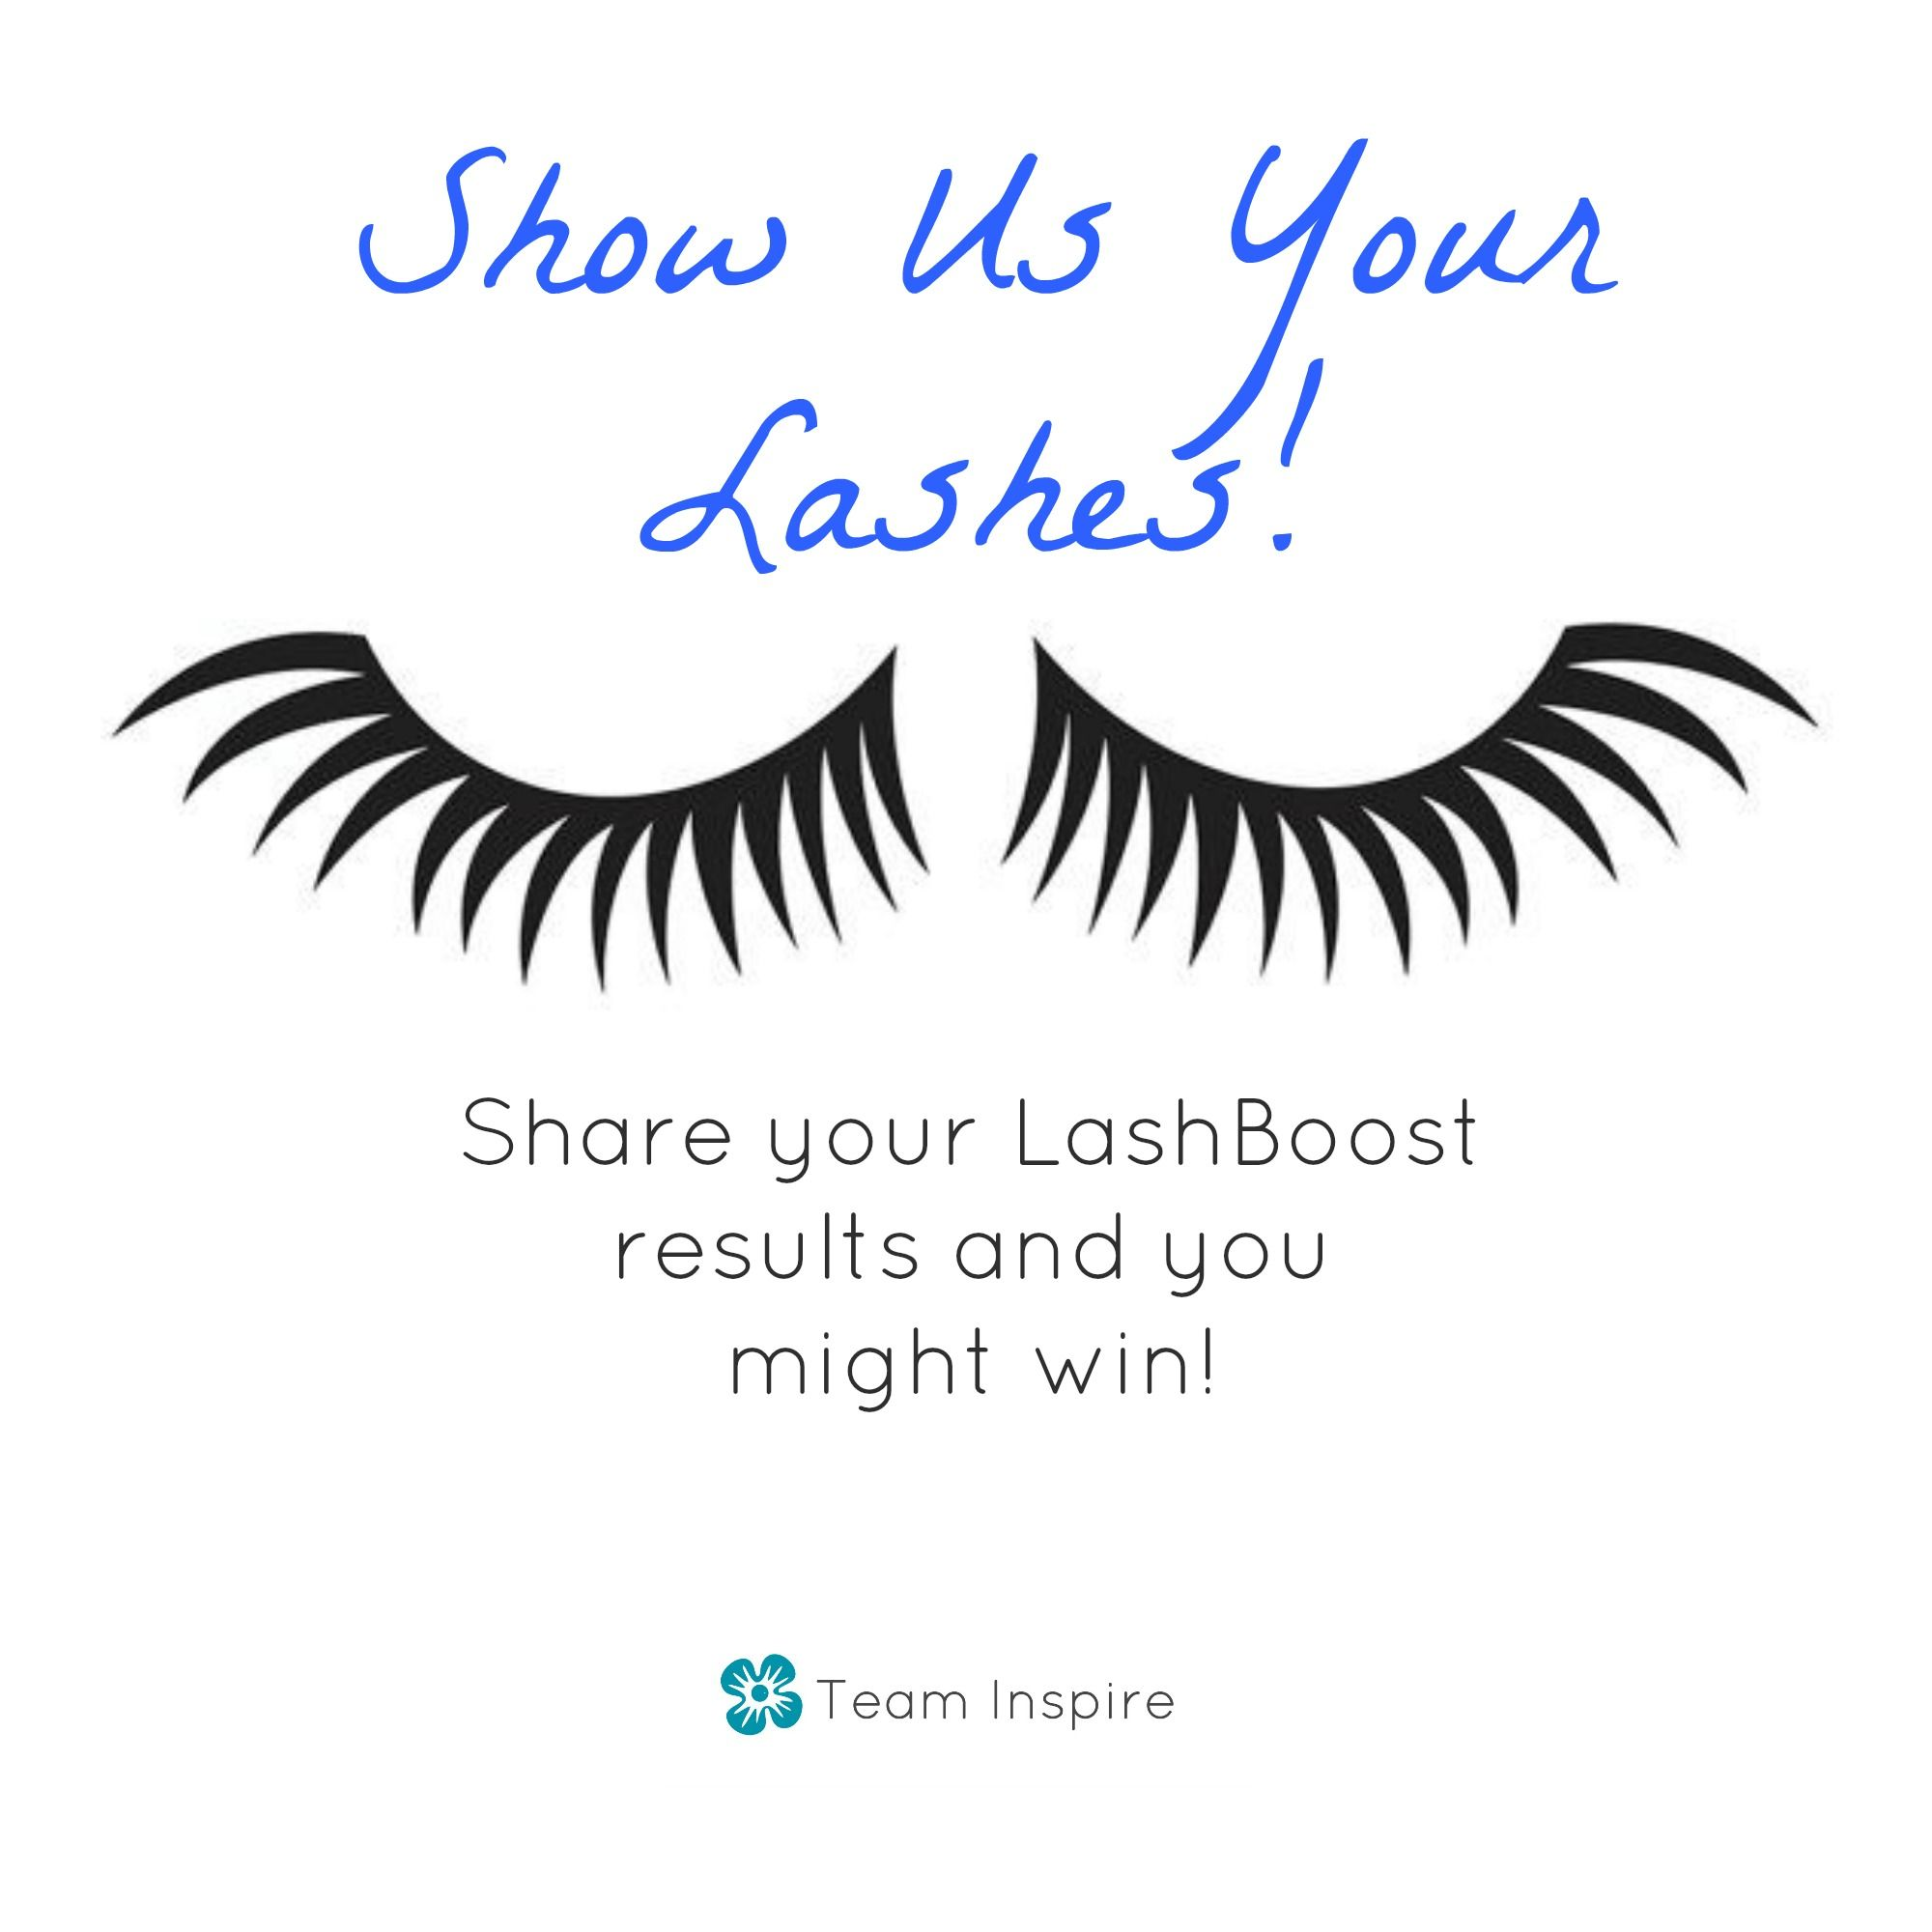 Competition Time! Show me your lashes on Twitter @JuliePhelps12 and be entered to win!